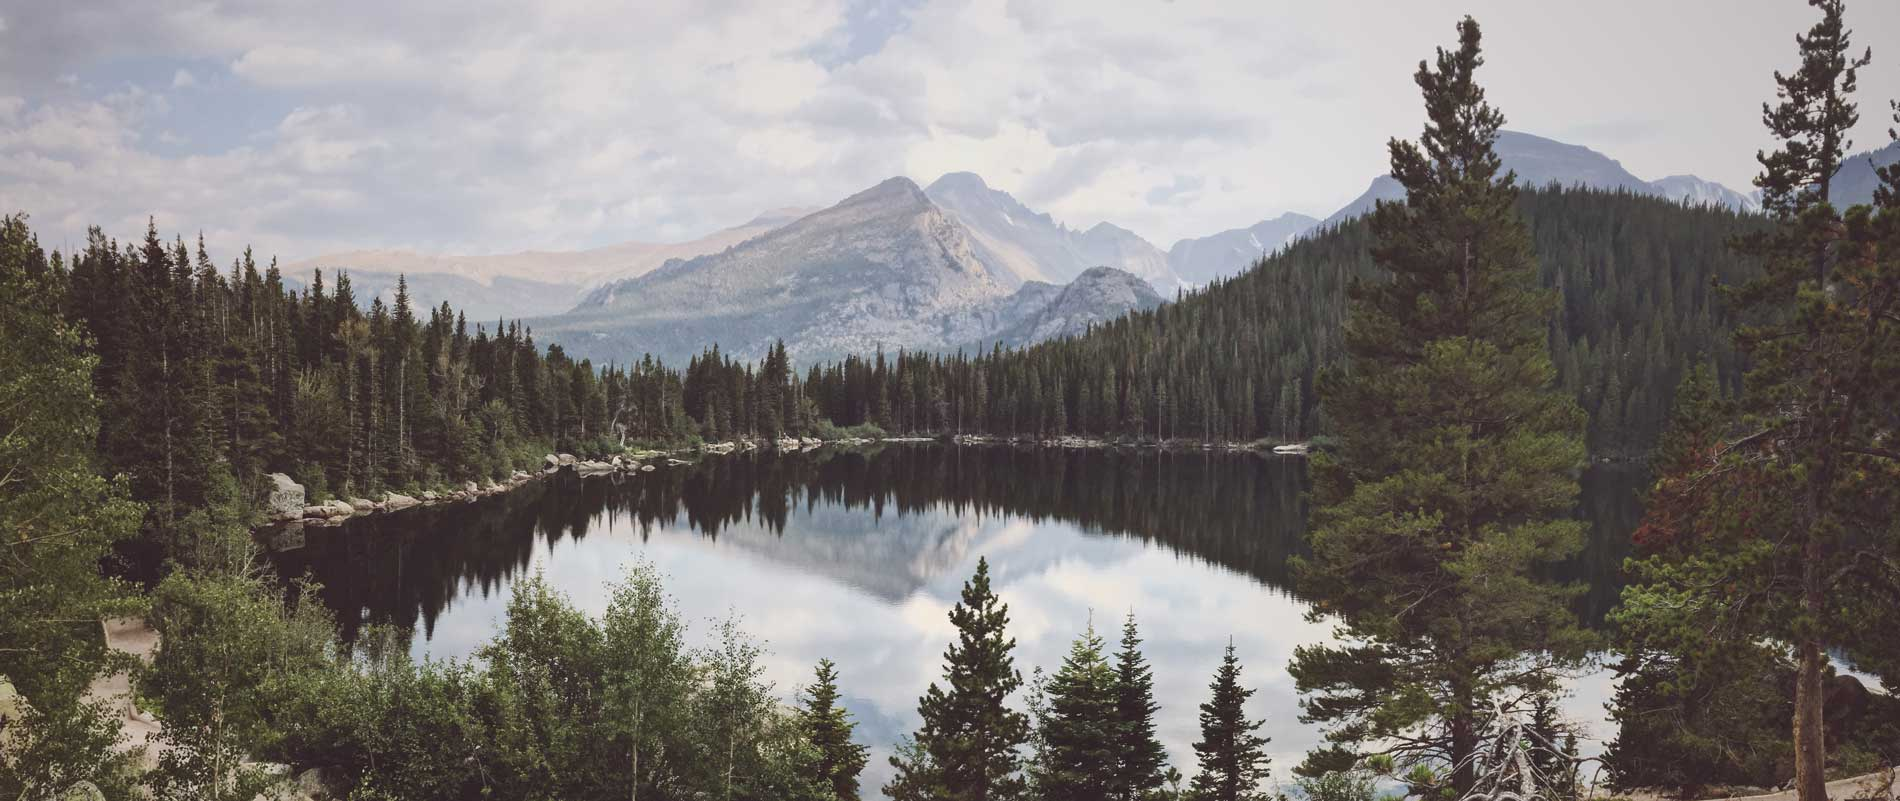 forest in colorado with lake in the foreground